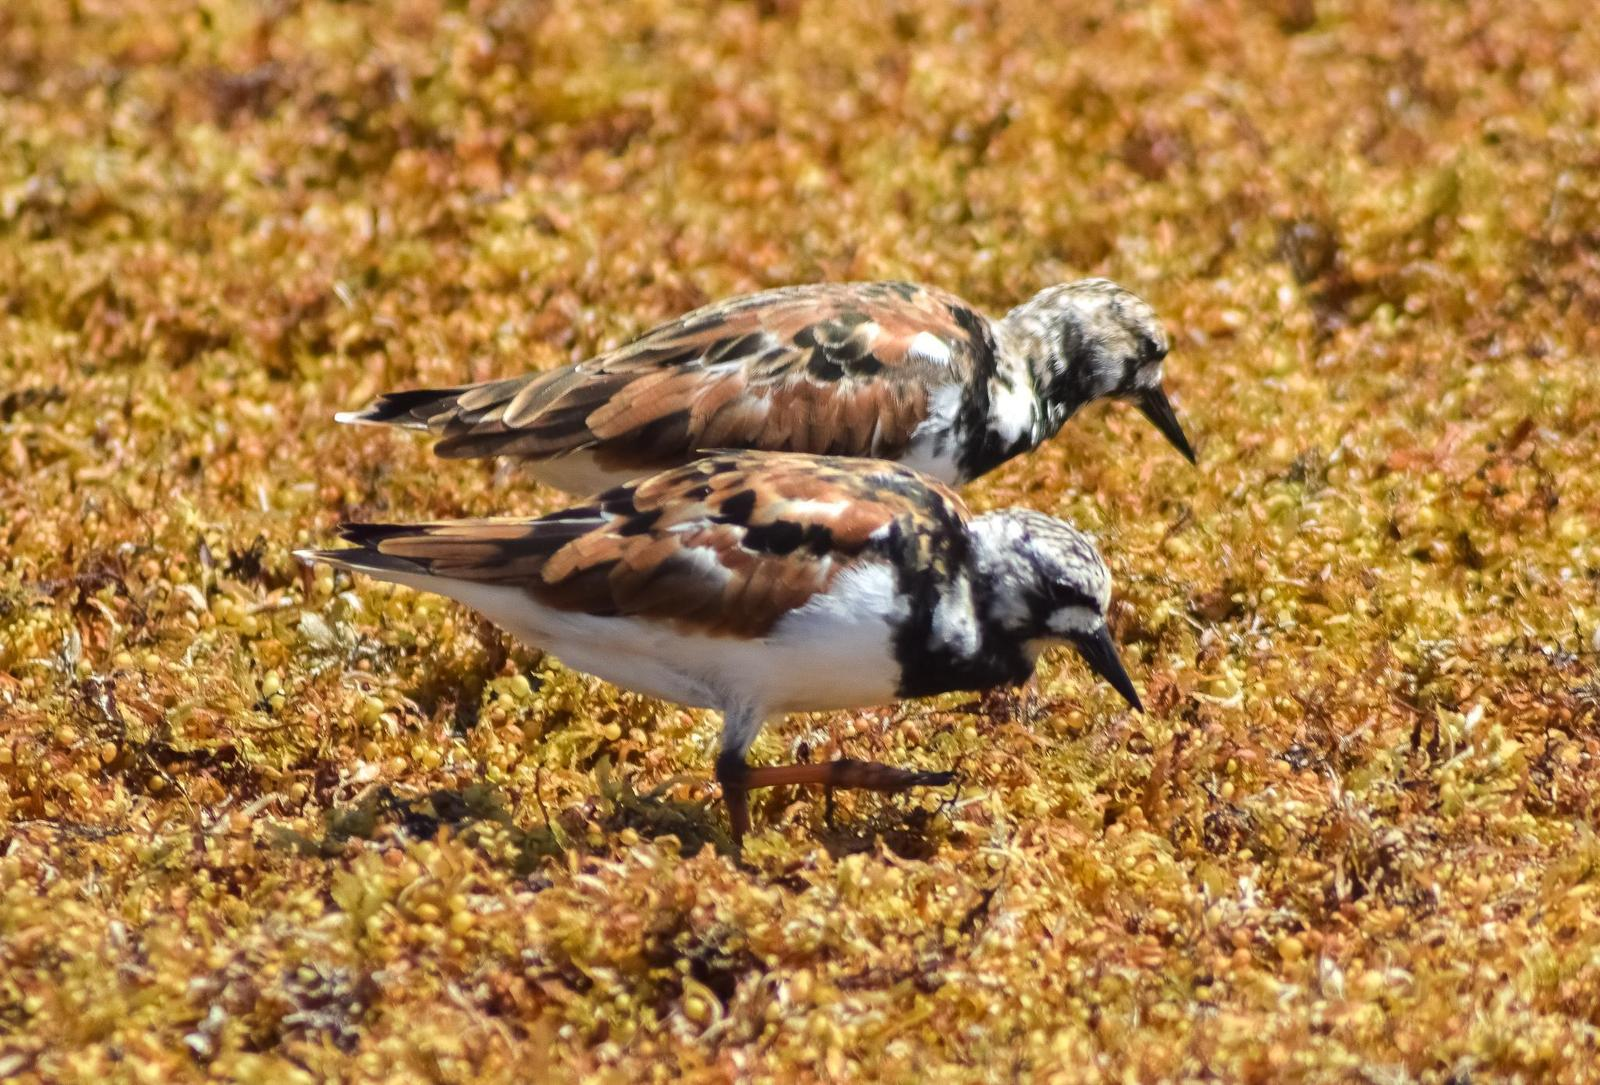 Ruddy Turnstone Photo by Laura A. Martínez Cantú